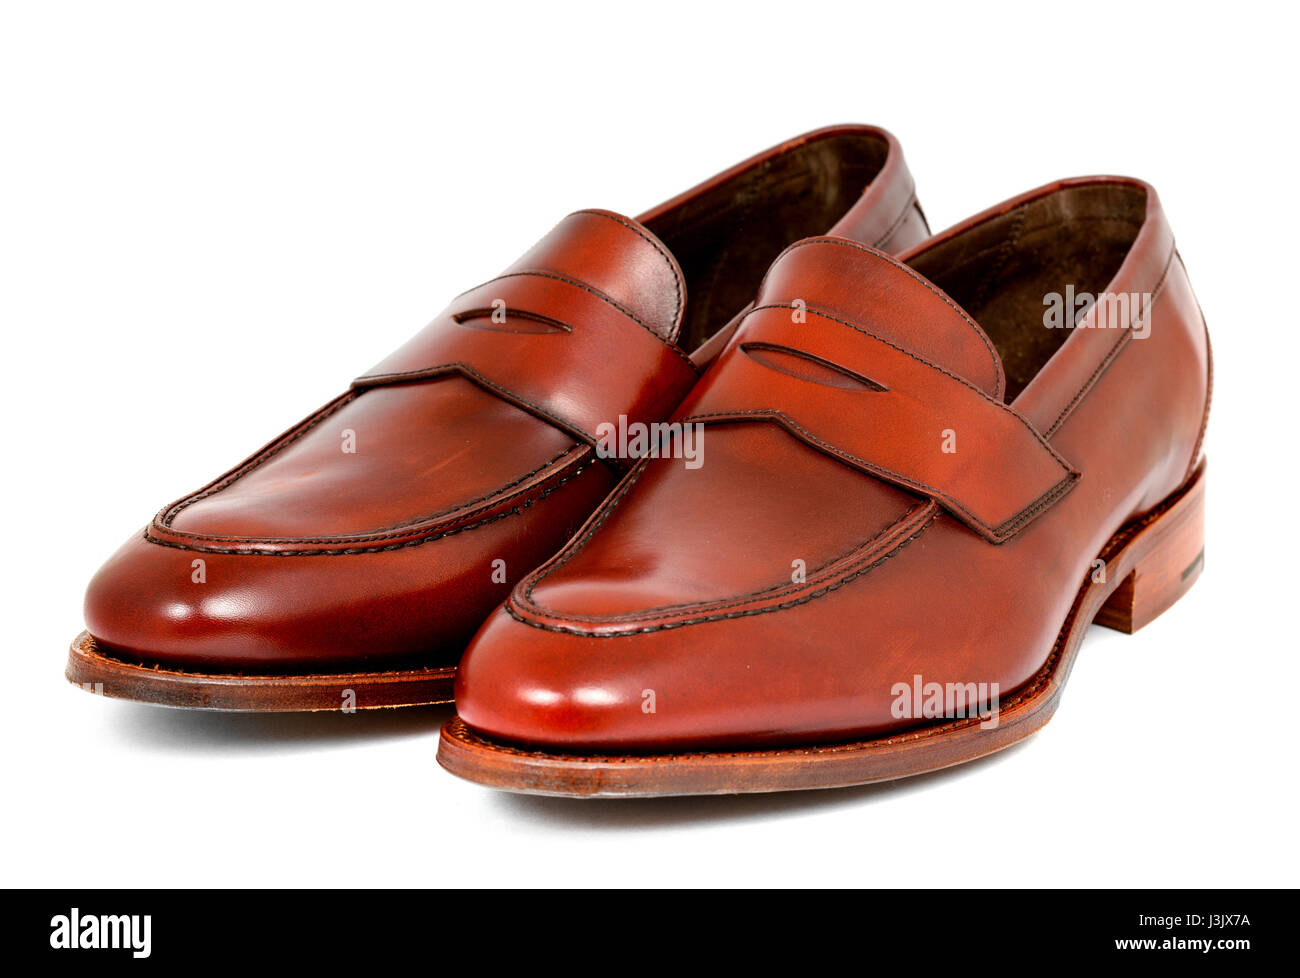 Pair of leather burgundy penny loafer shoes together on white background. Horizontal image diagonal left - Stock Image